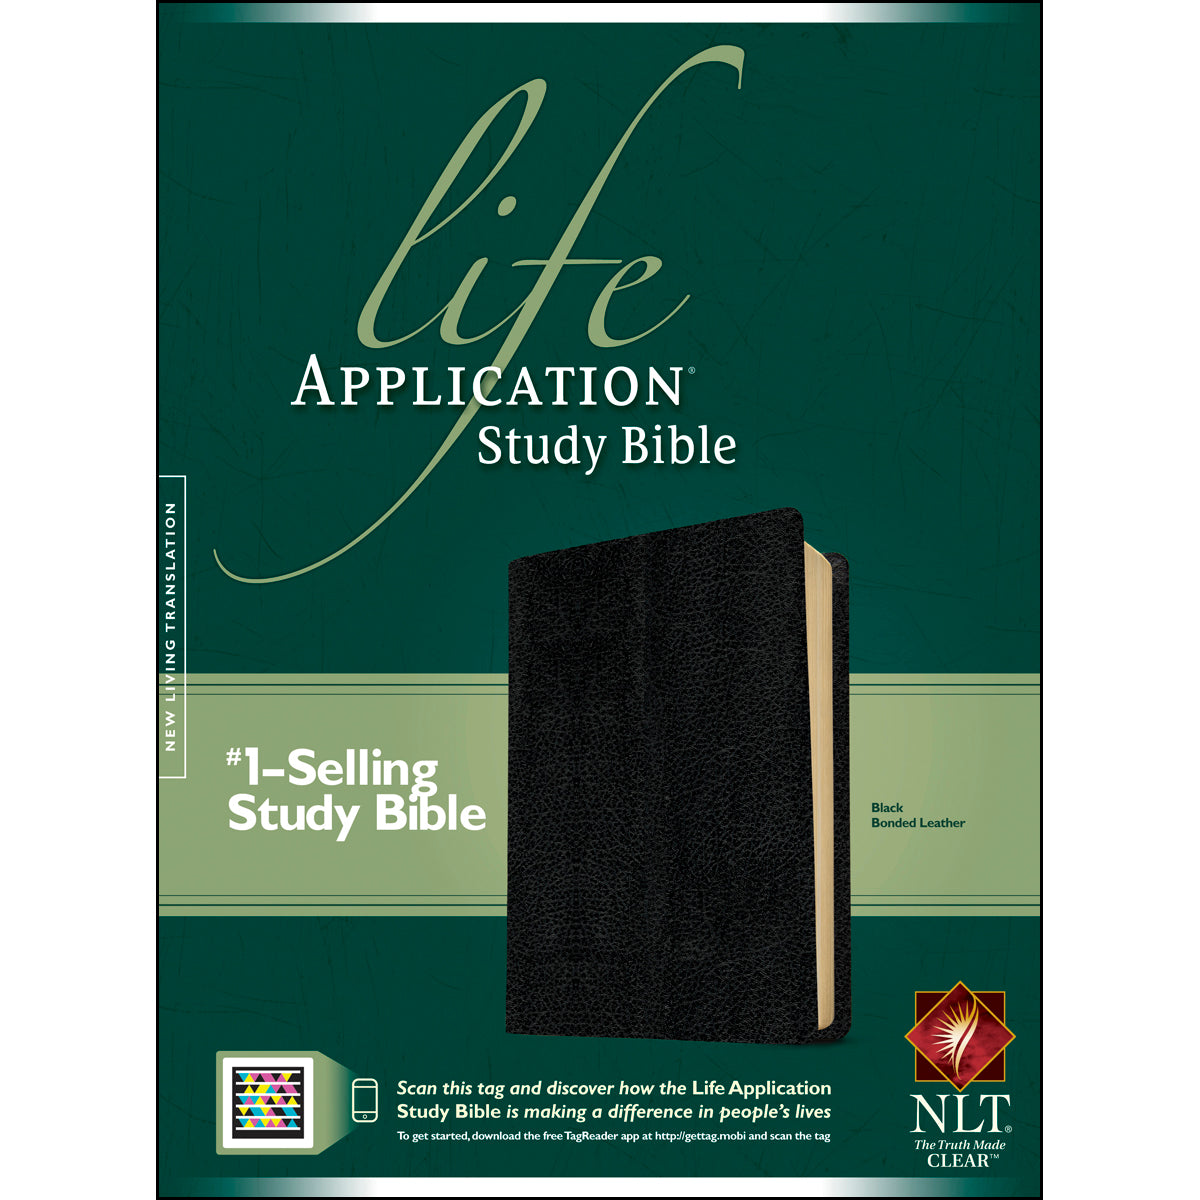 NLT Life Application Study Bible Black (Bonded Leather)